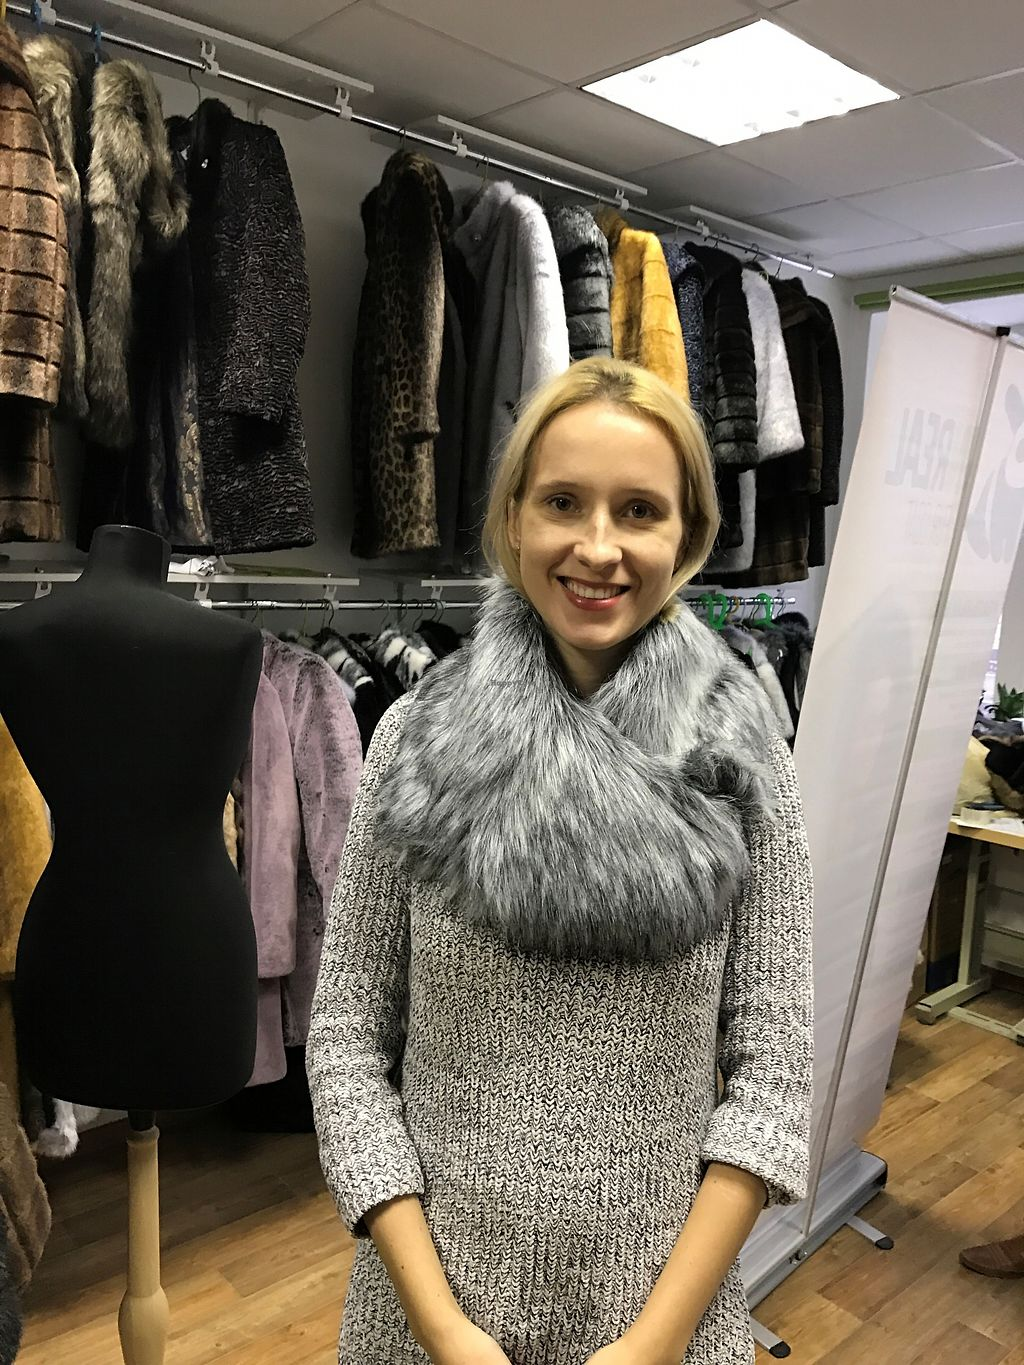 """Photo of UNREAL Fur Coat  by <a href=""""/members/profile/YoungLancashire"""">YoungLancashire</a> <br/>This will keep you warm and animals well! <br/> January 3, 2018  - <a href='/contact/abuse/image/86631/342559'>Report</a>"""